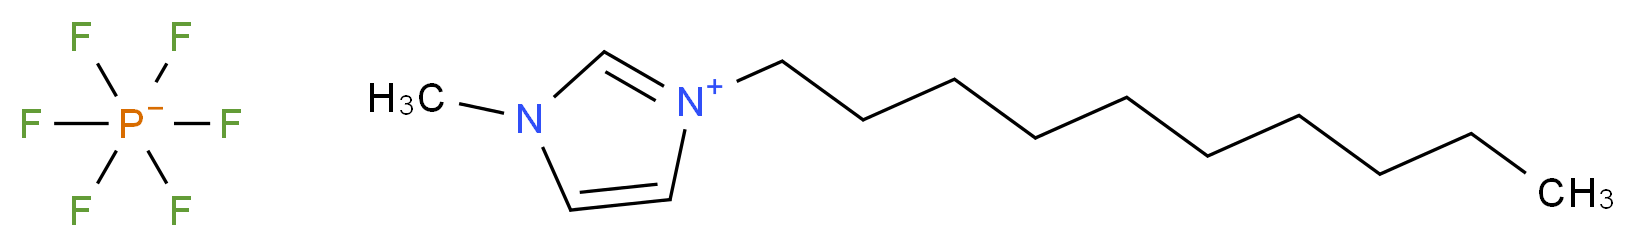 3-decyl-1-methyl-1H-imidazol-3-ium; hexafluoro-λ<sup>5</sup>-phosphanuide_分子结构_CAS_362043-46-7